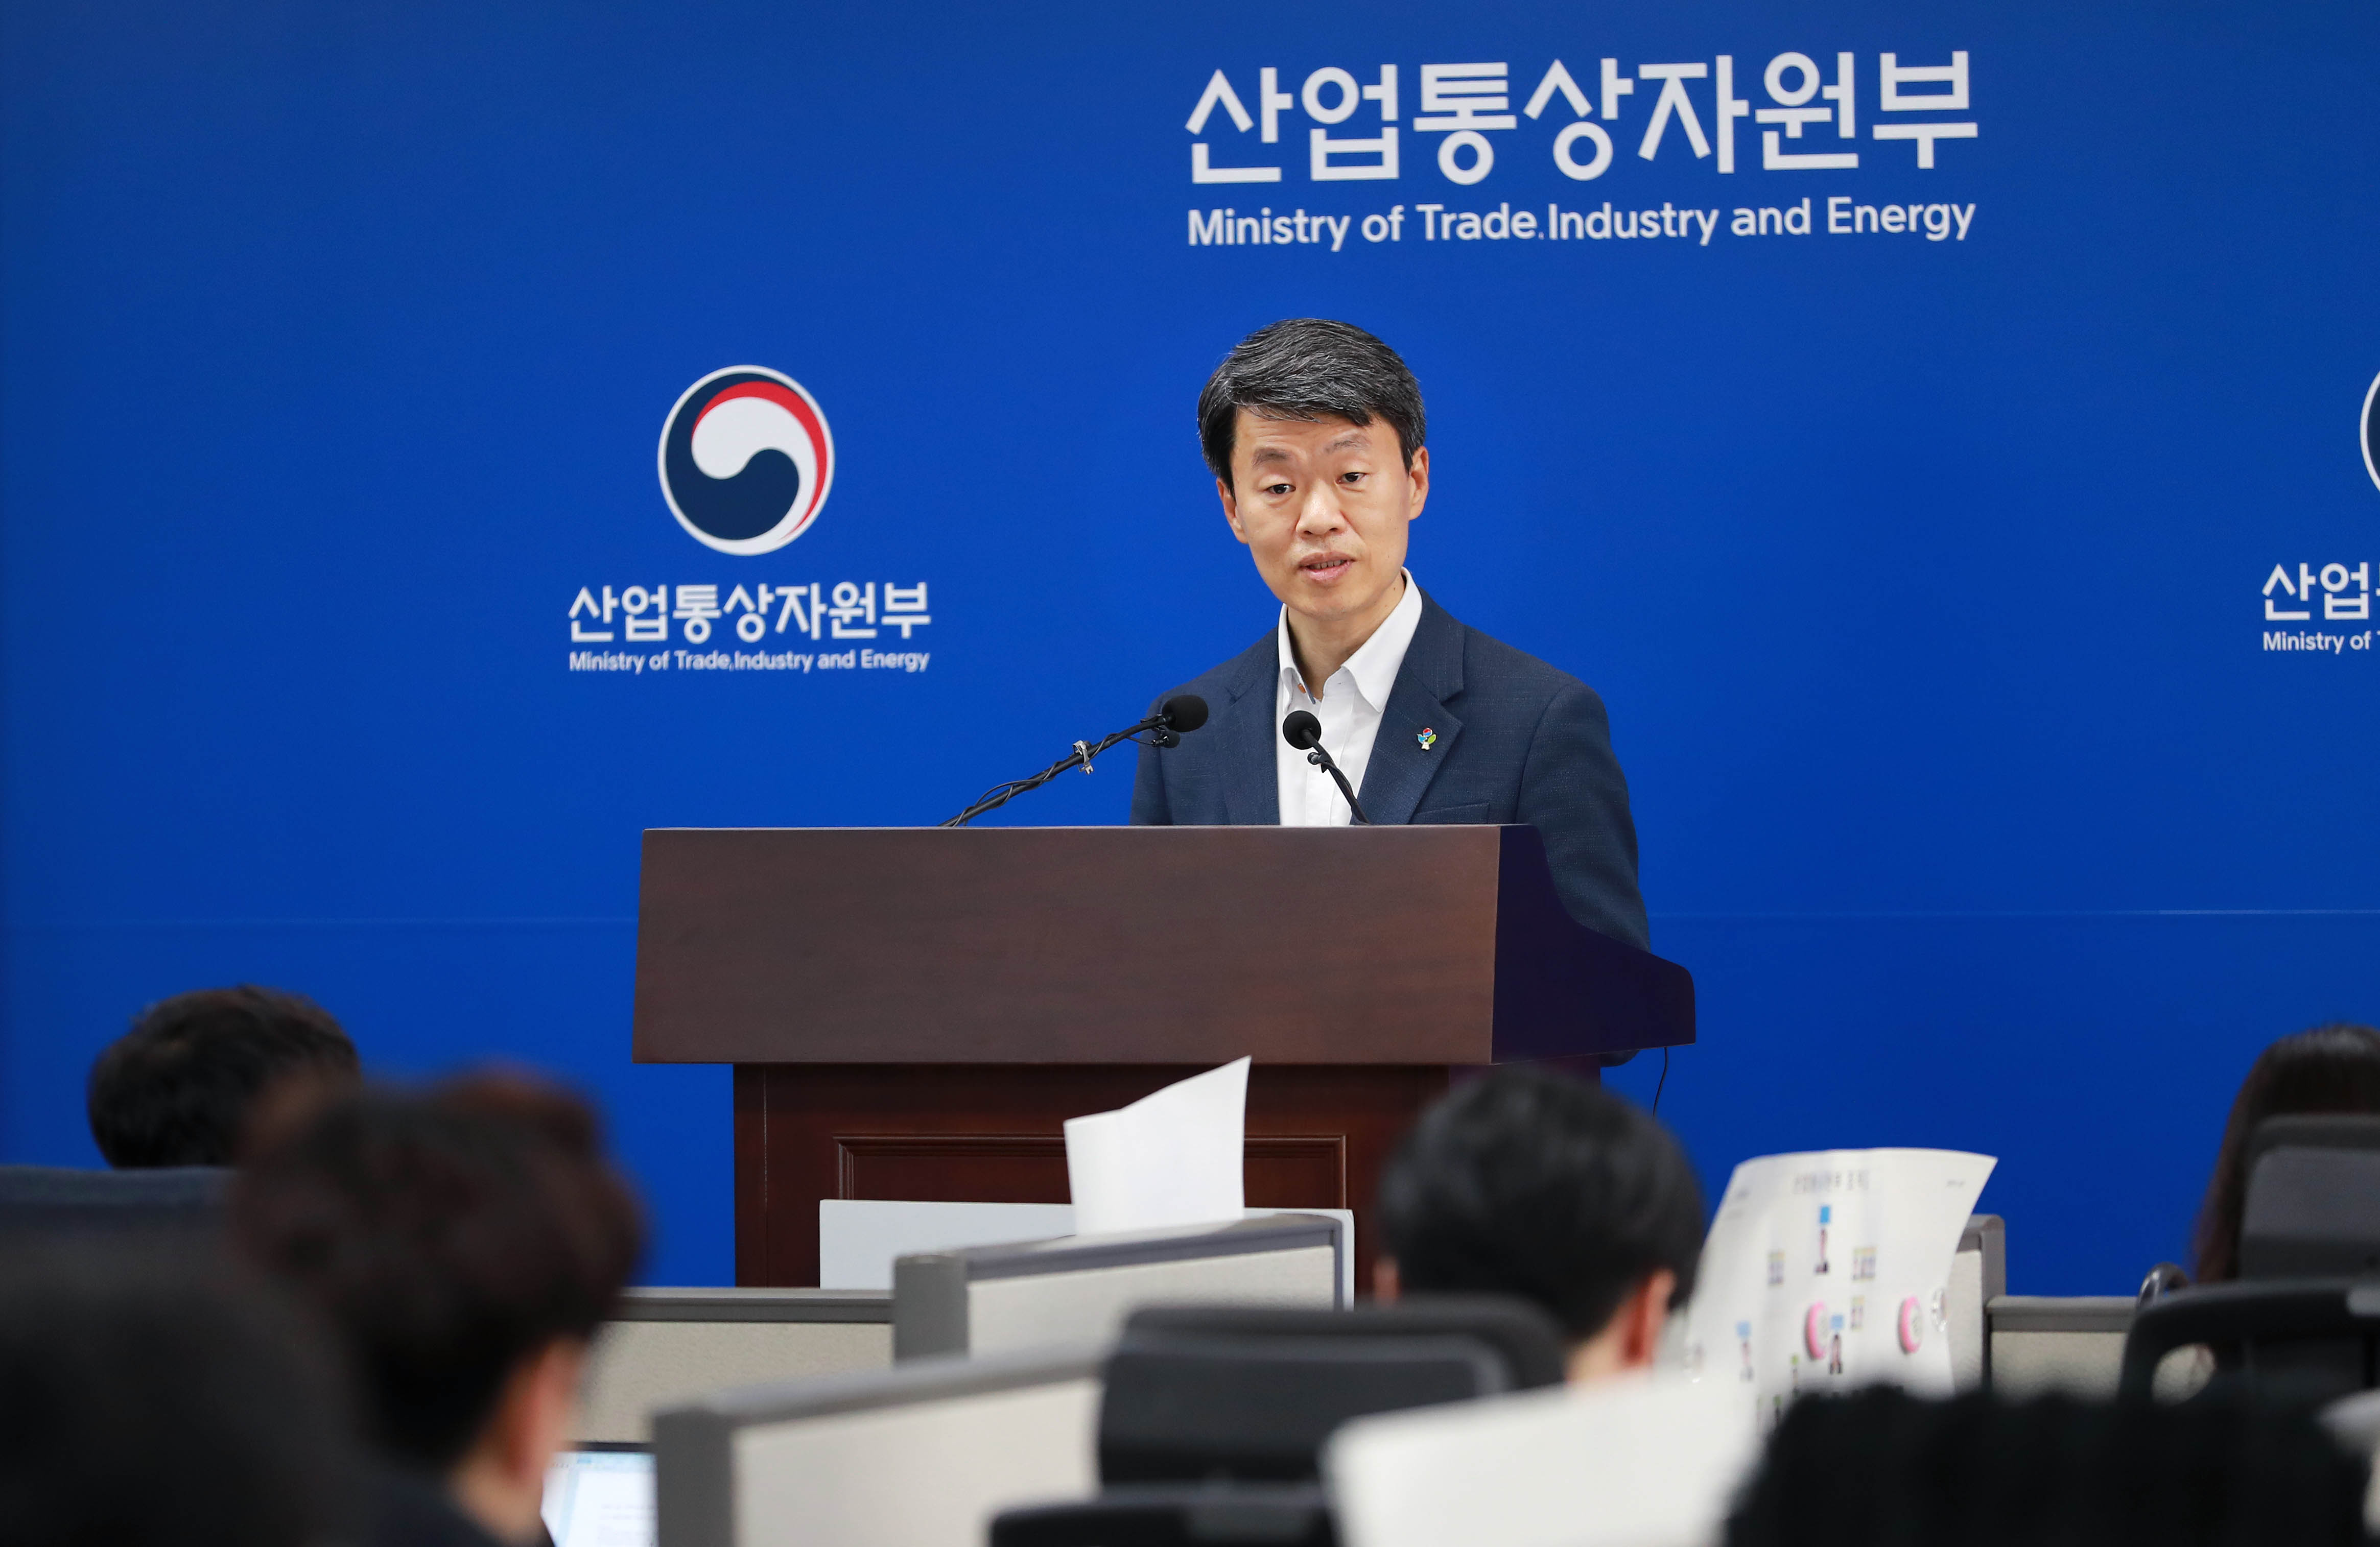 Korea to resume WTO complaint over Japan's export restrictions on key materials Image 0